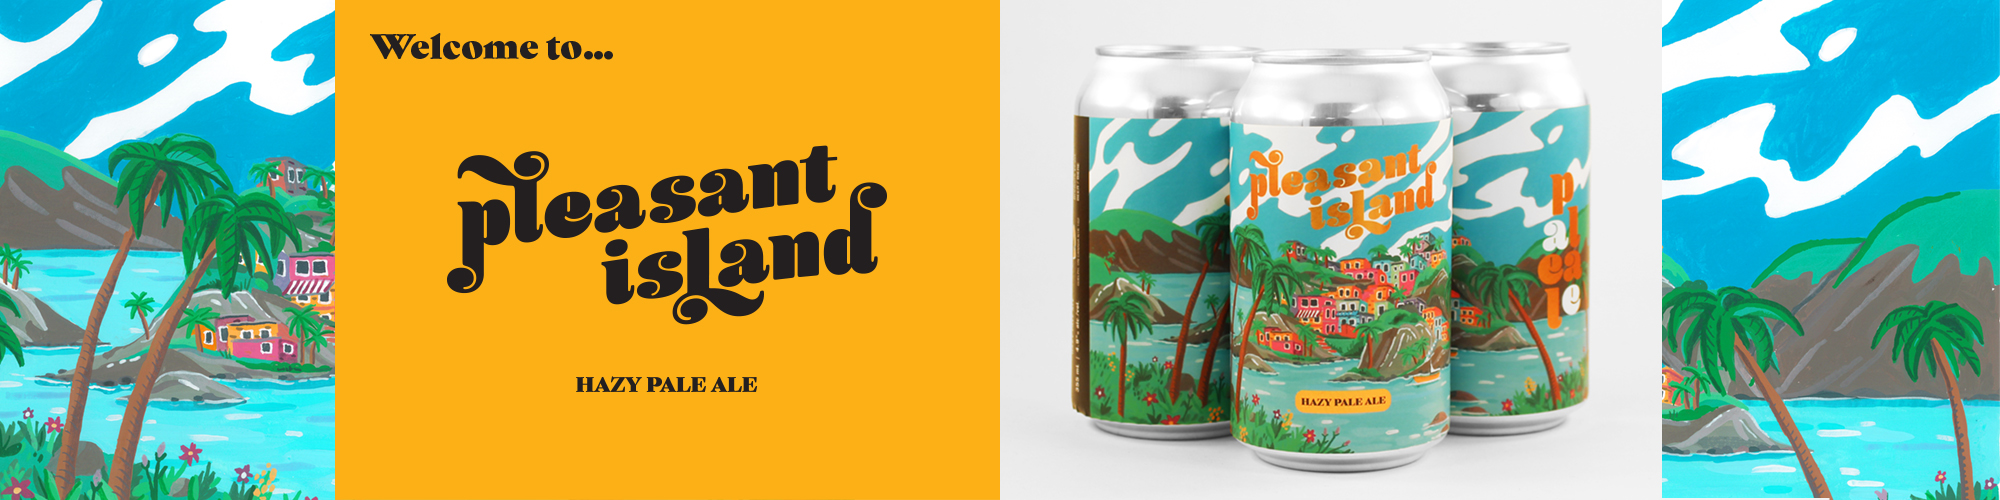 Wellington Brewery - Pleasant Island - Hazy Pale Ale